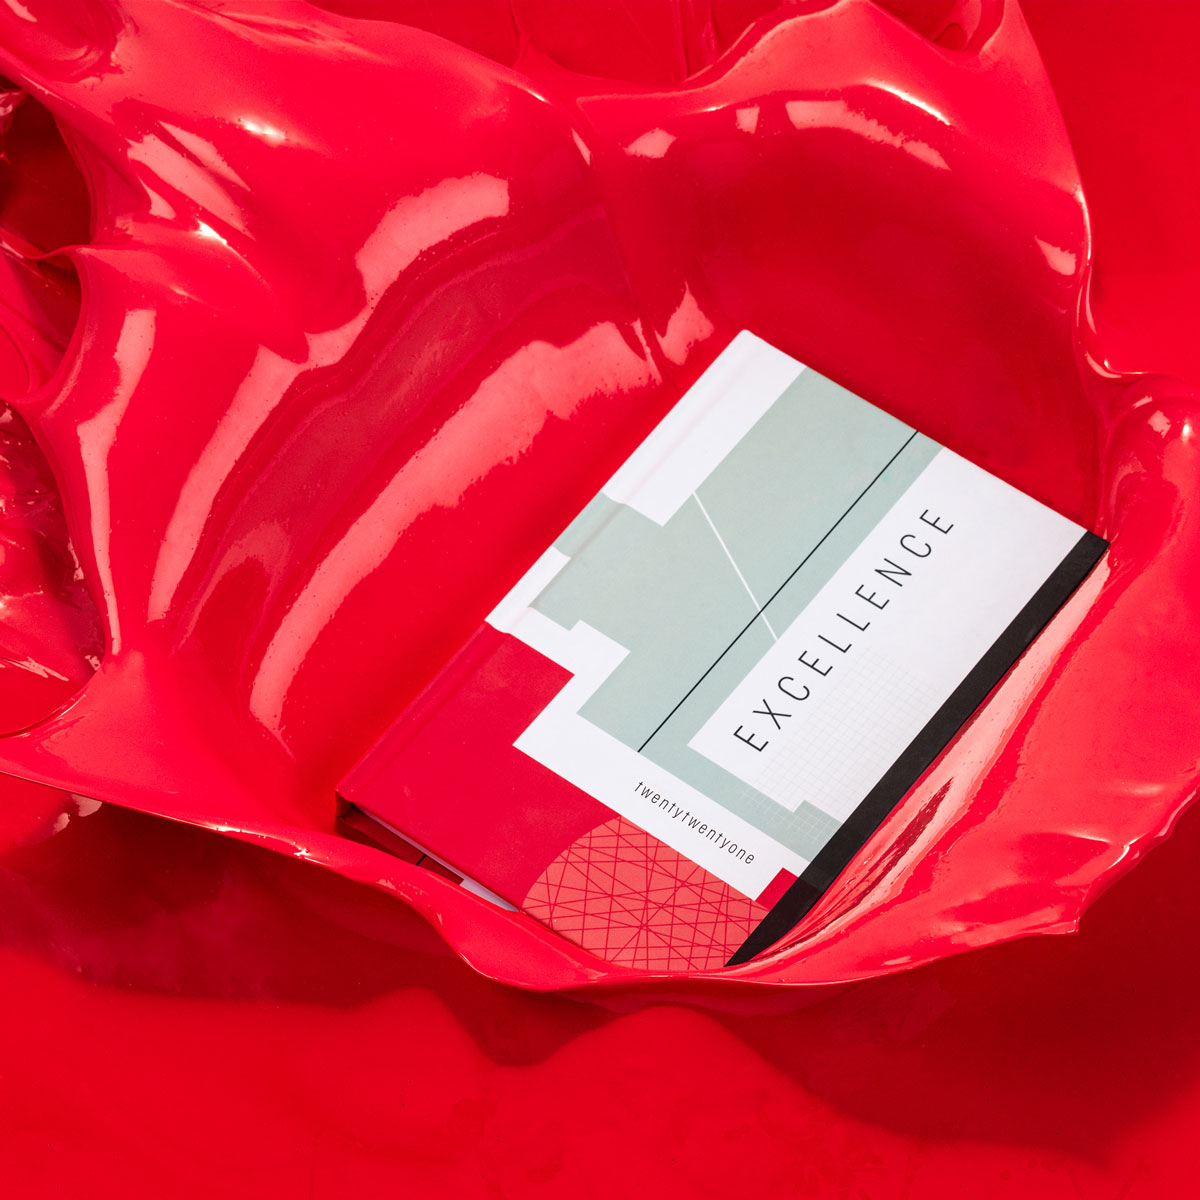 Creative Planner for Creative People - Splashing in Red Paint